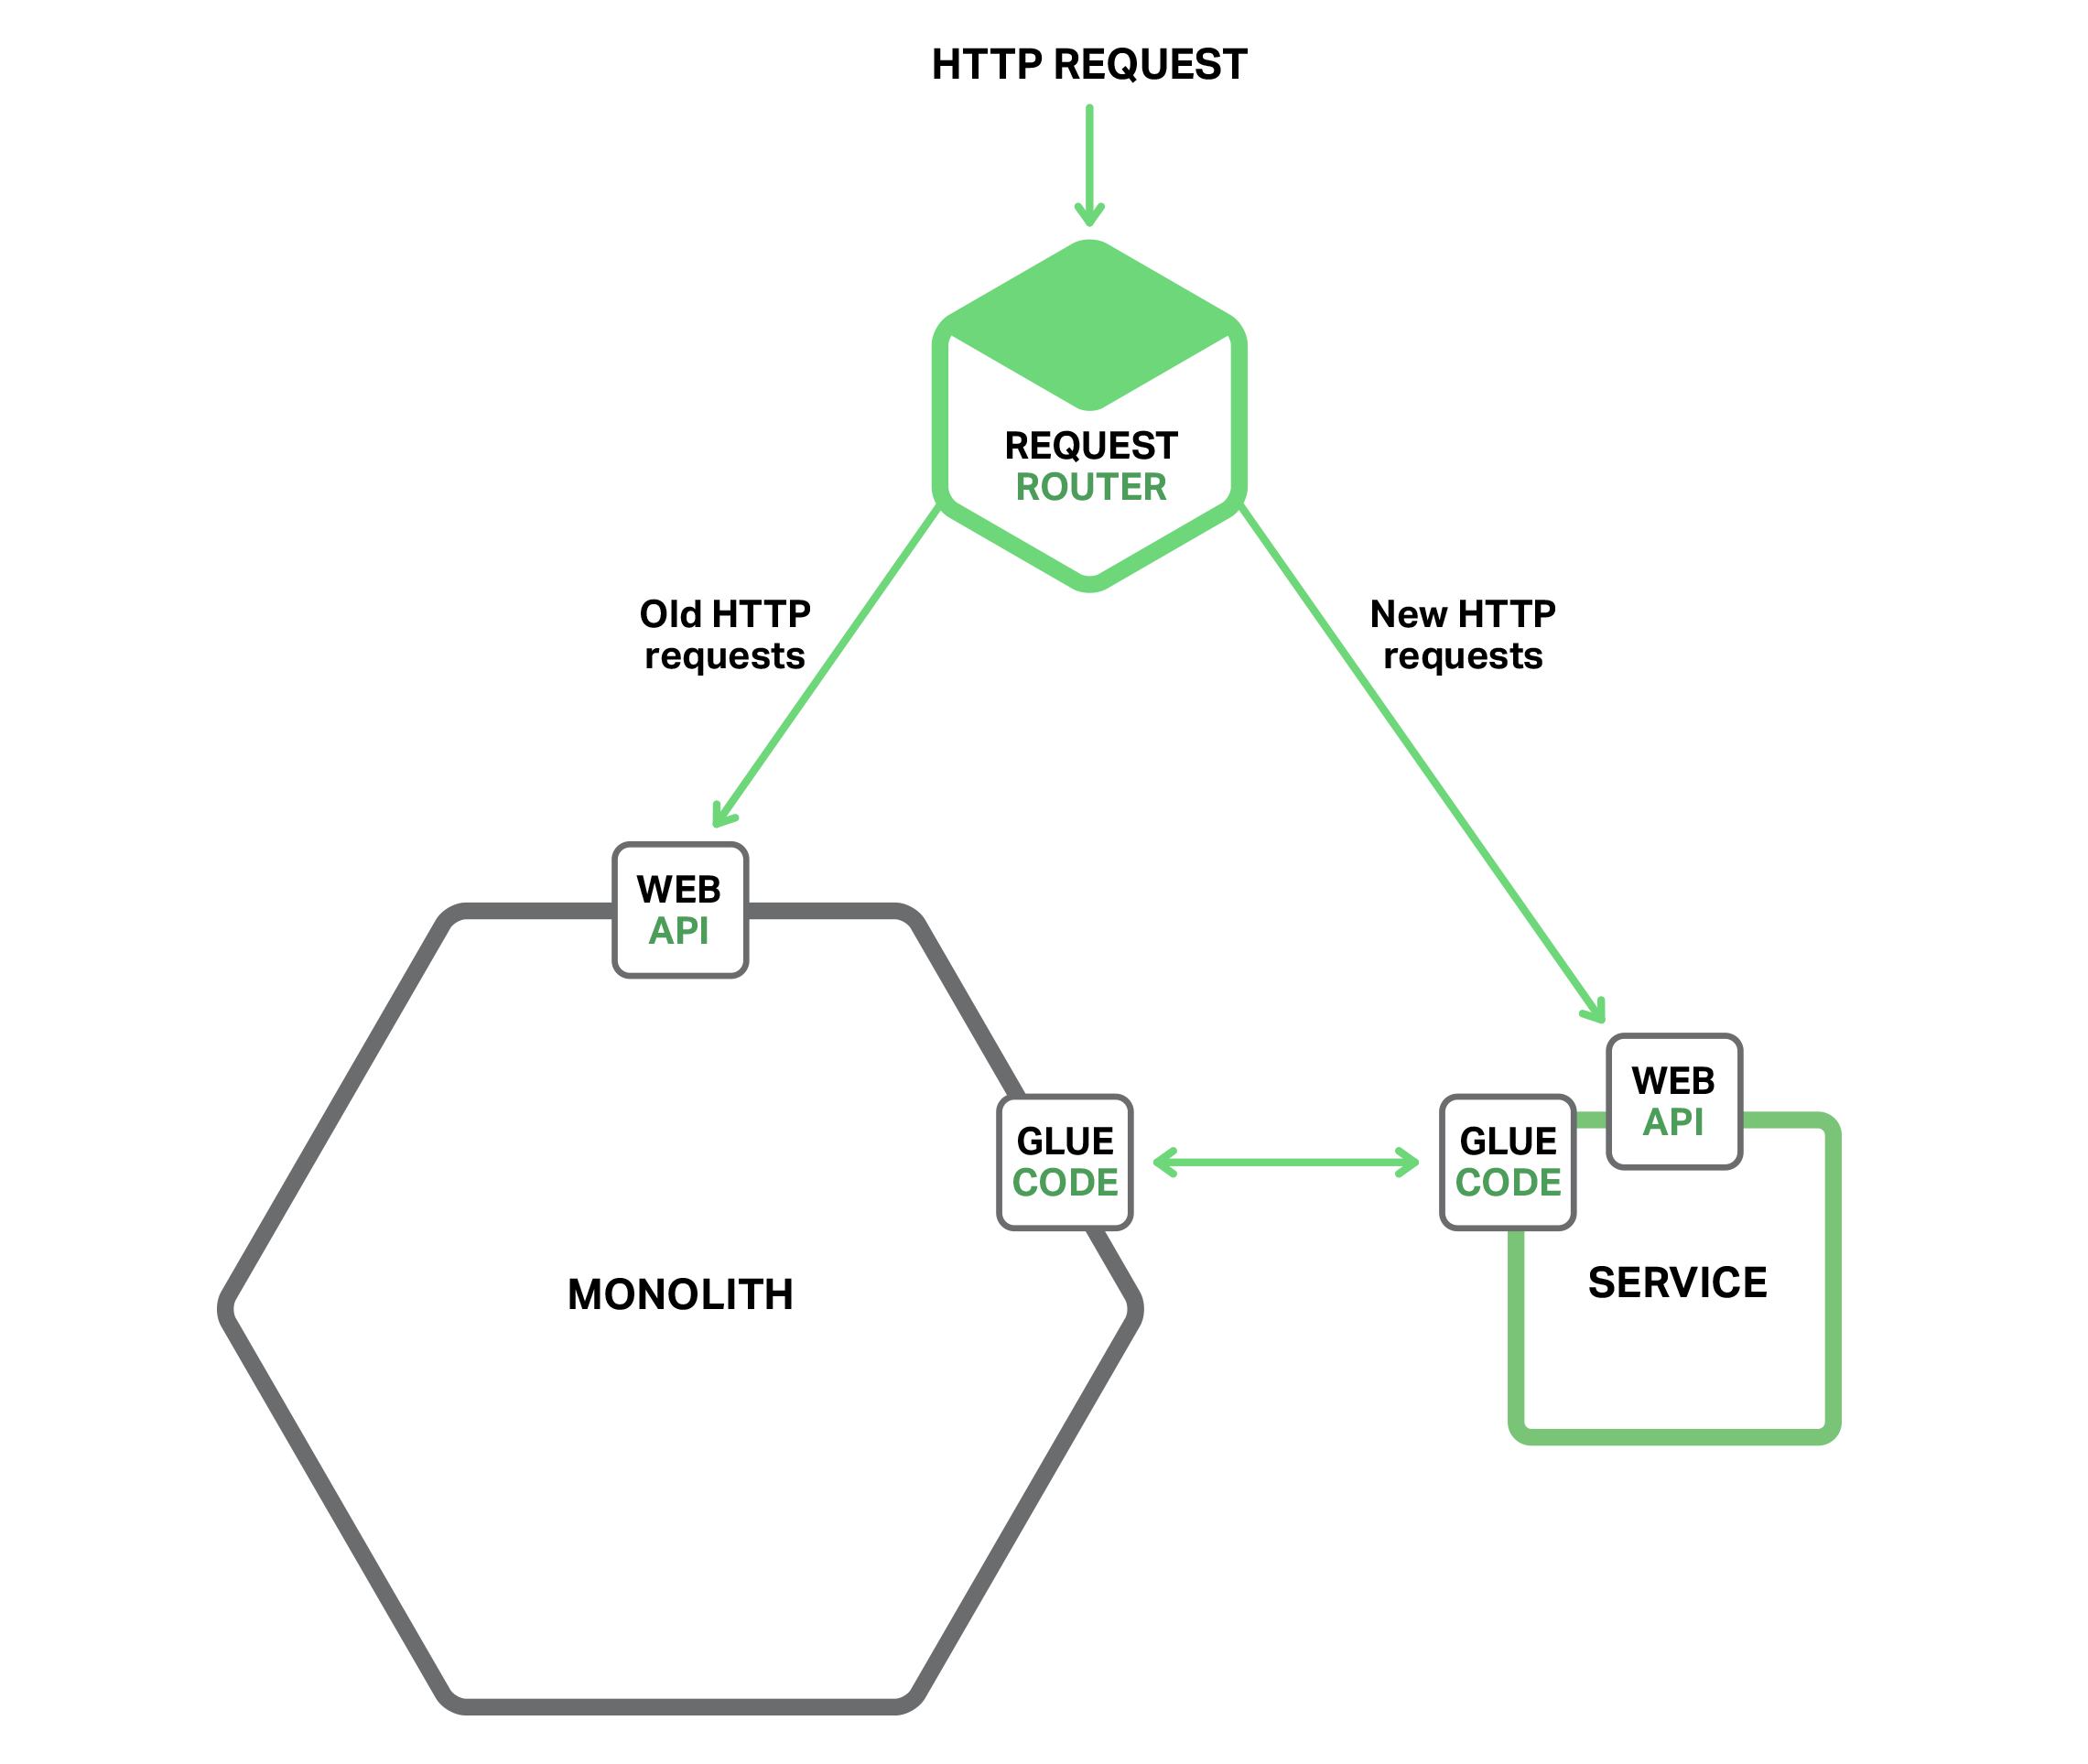 Refactoring A Monolith Into Microservices Nginx How The Diagram In Link Maps To Circuit Like This Start Migrating From Architecture Implement New Functionality As